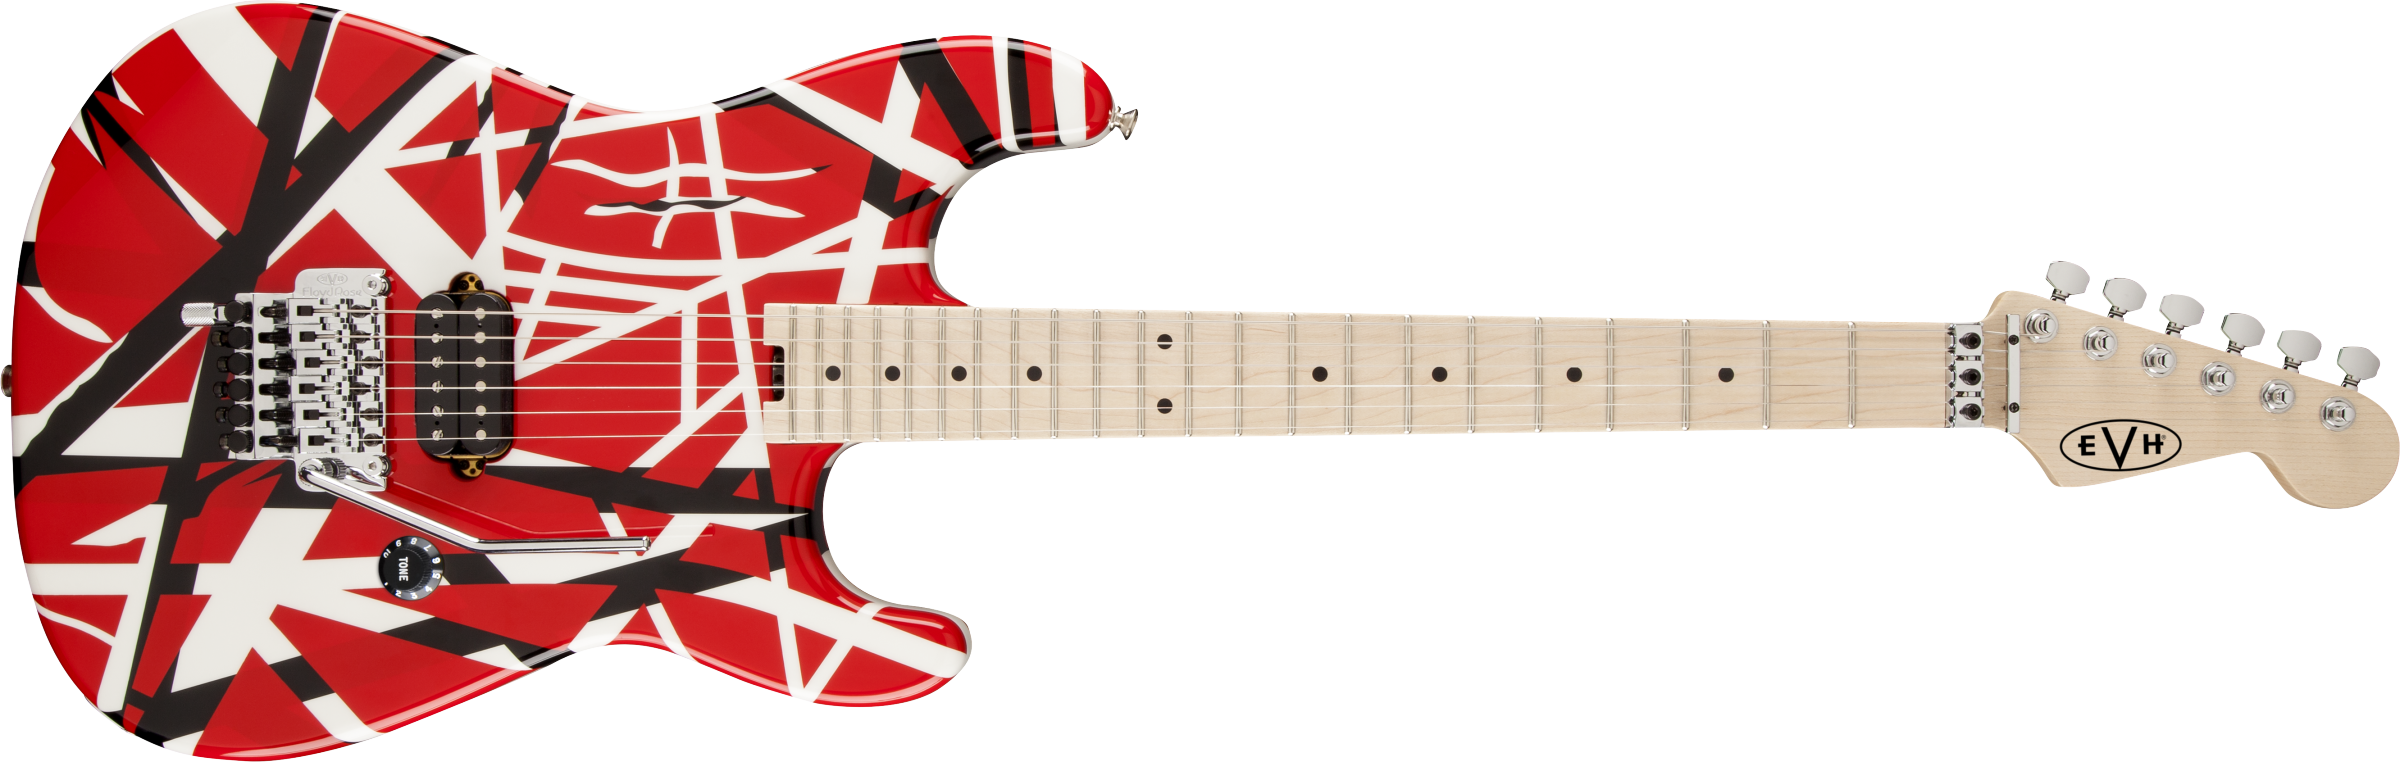 Evh 174 Striped Series Striped Series Evh Gear